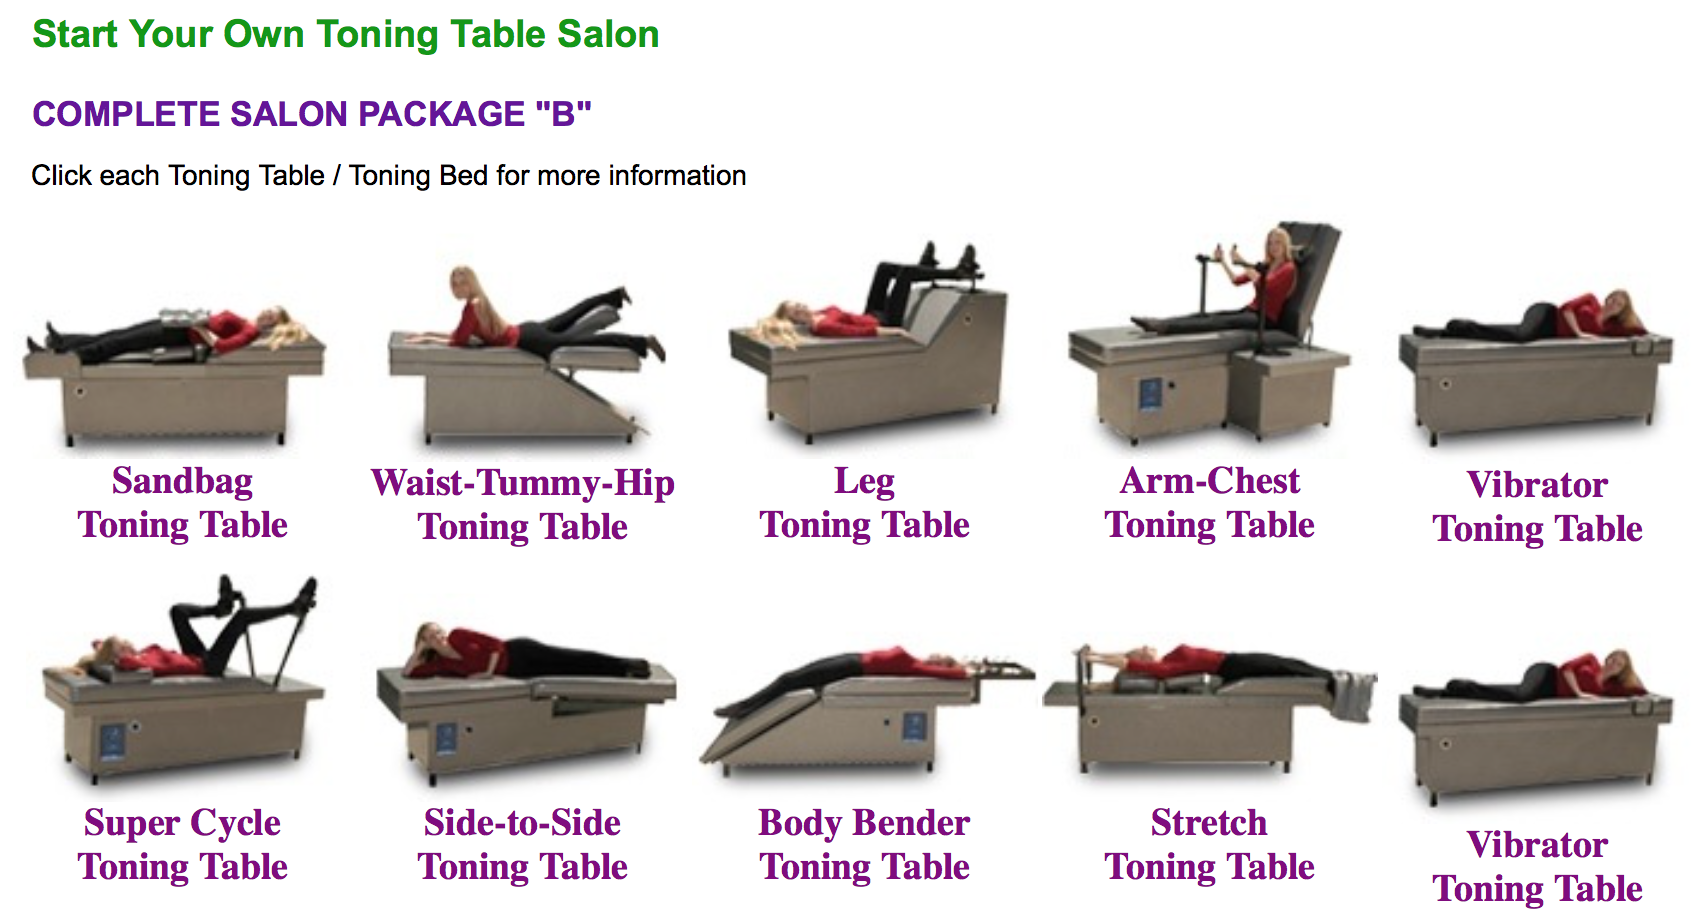 Toning Tables, Toning Beds